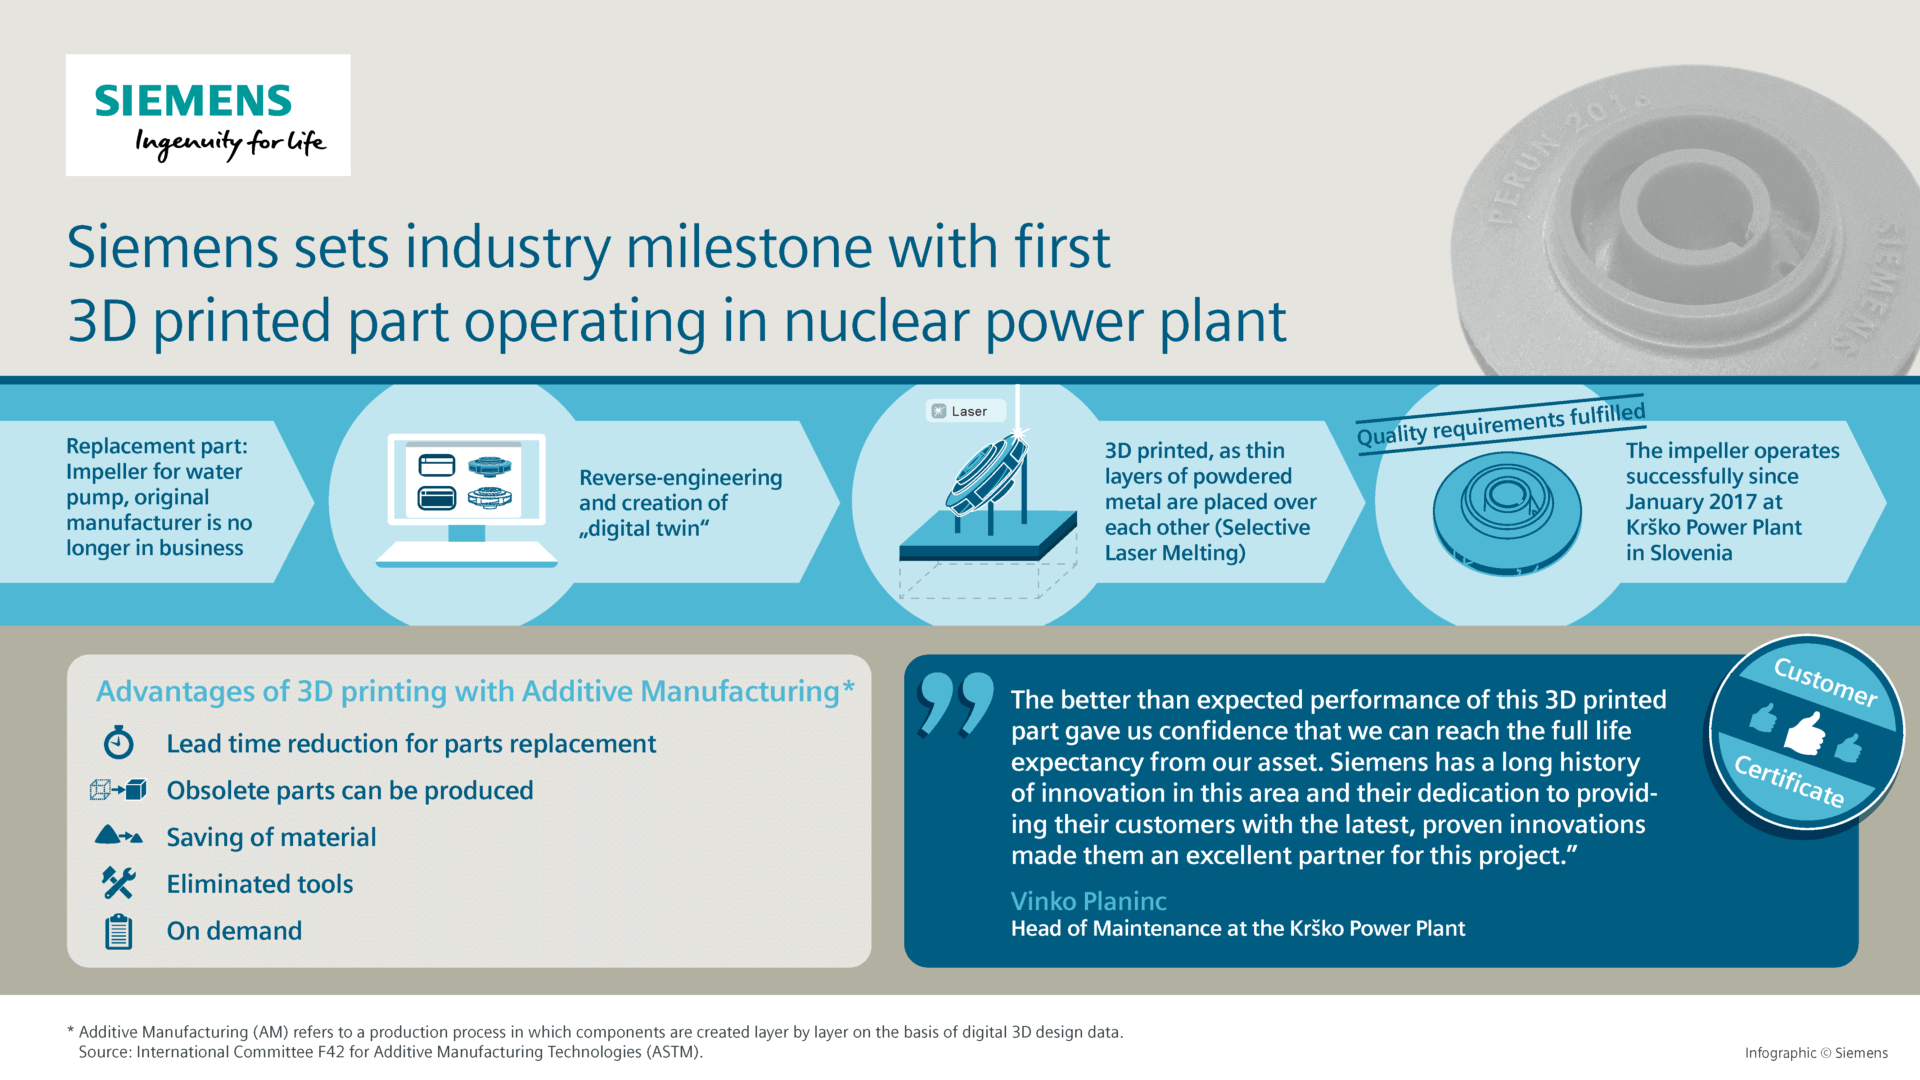 Siemens Making 3D Printed Gas Turbines & Parts for Nuclear Power